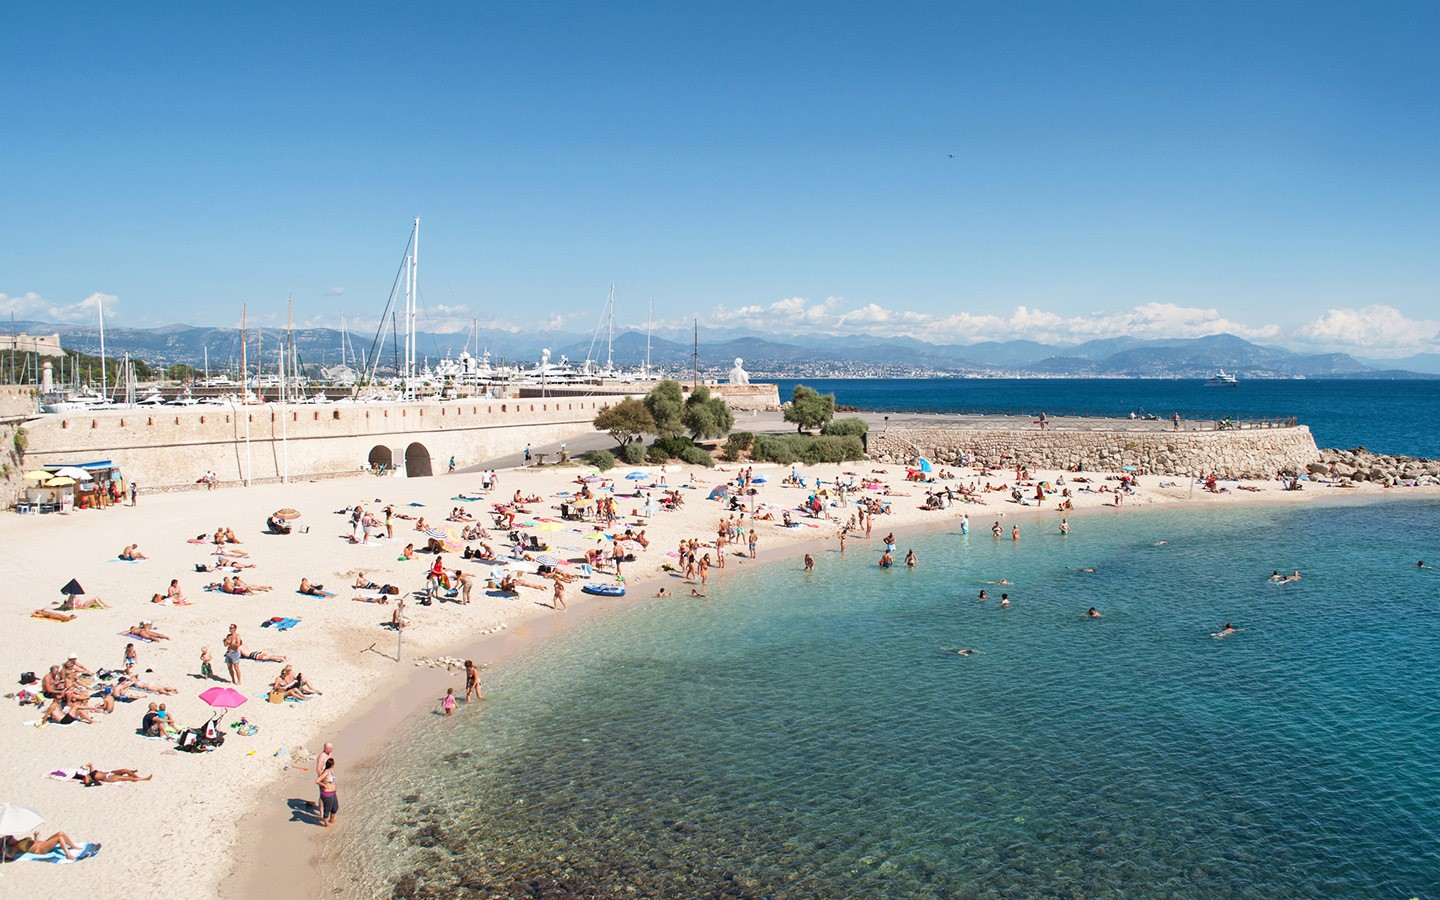 Relaxing on the beach, one of the best things to do in Antibes